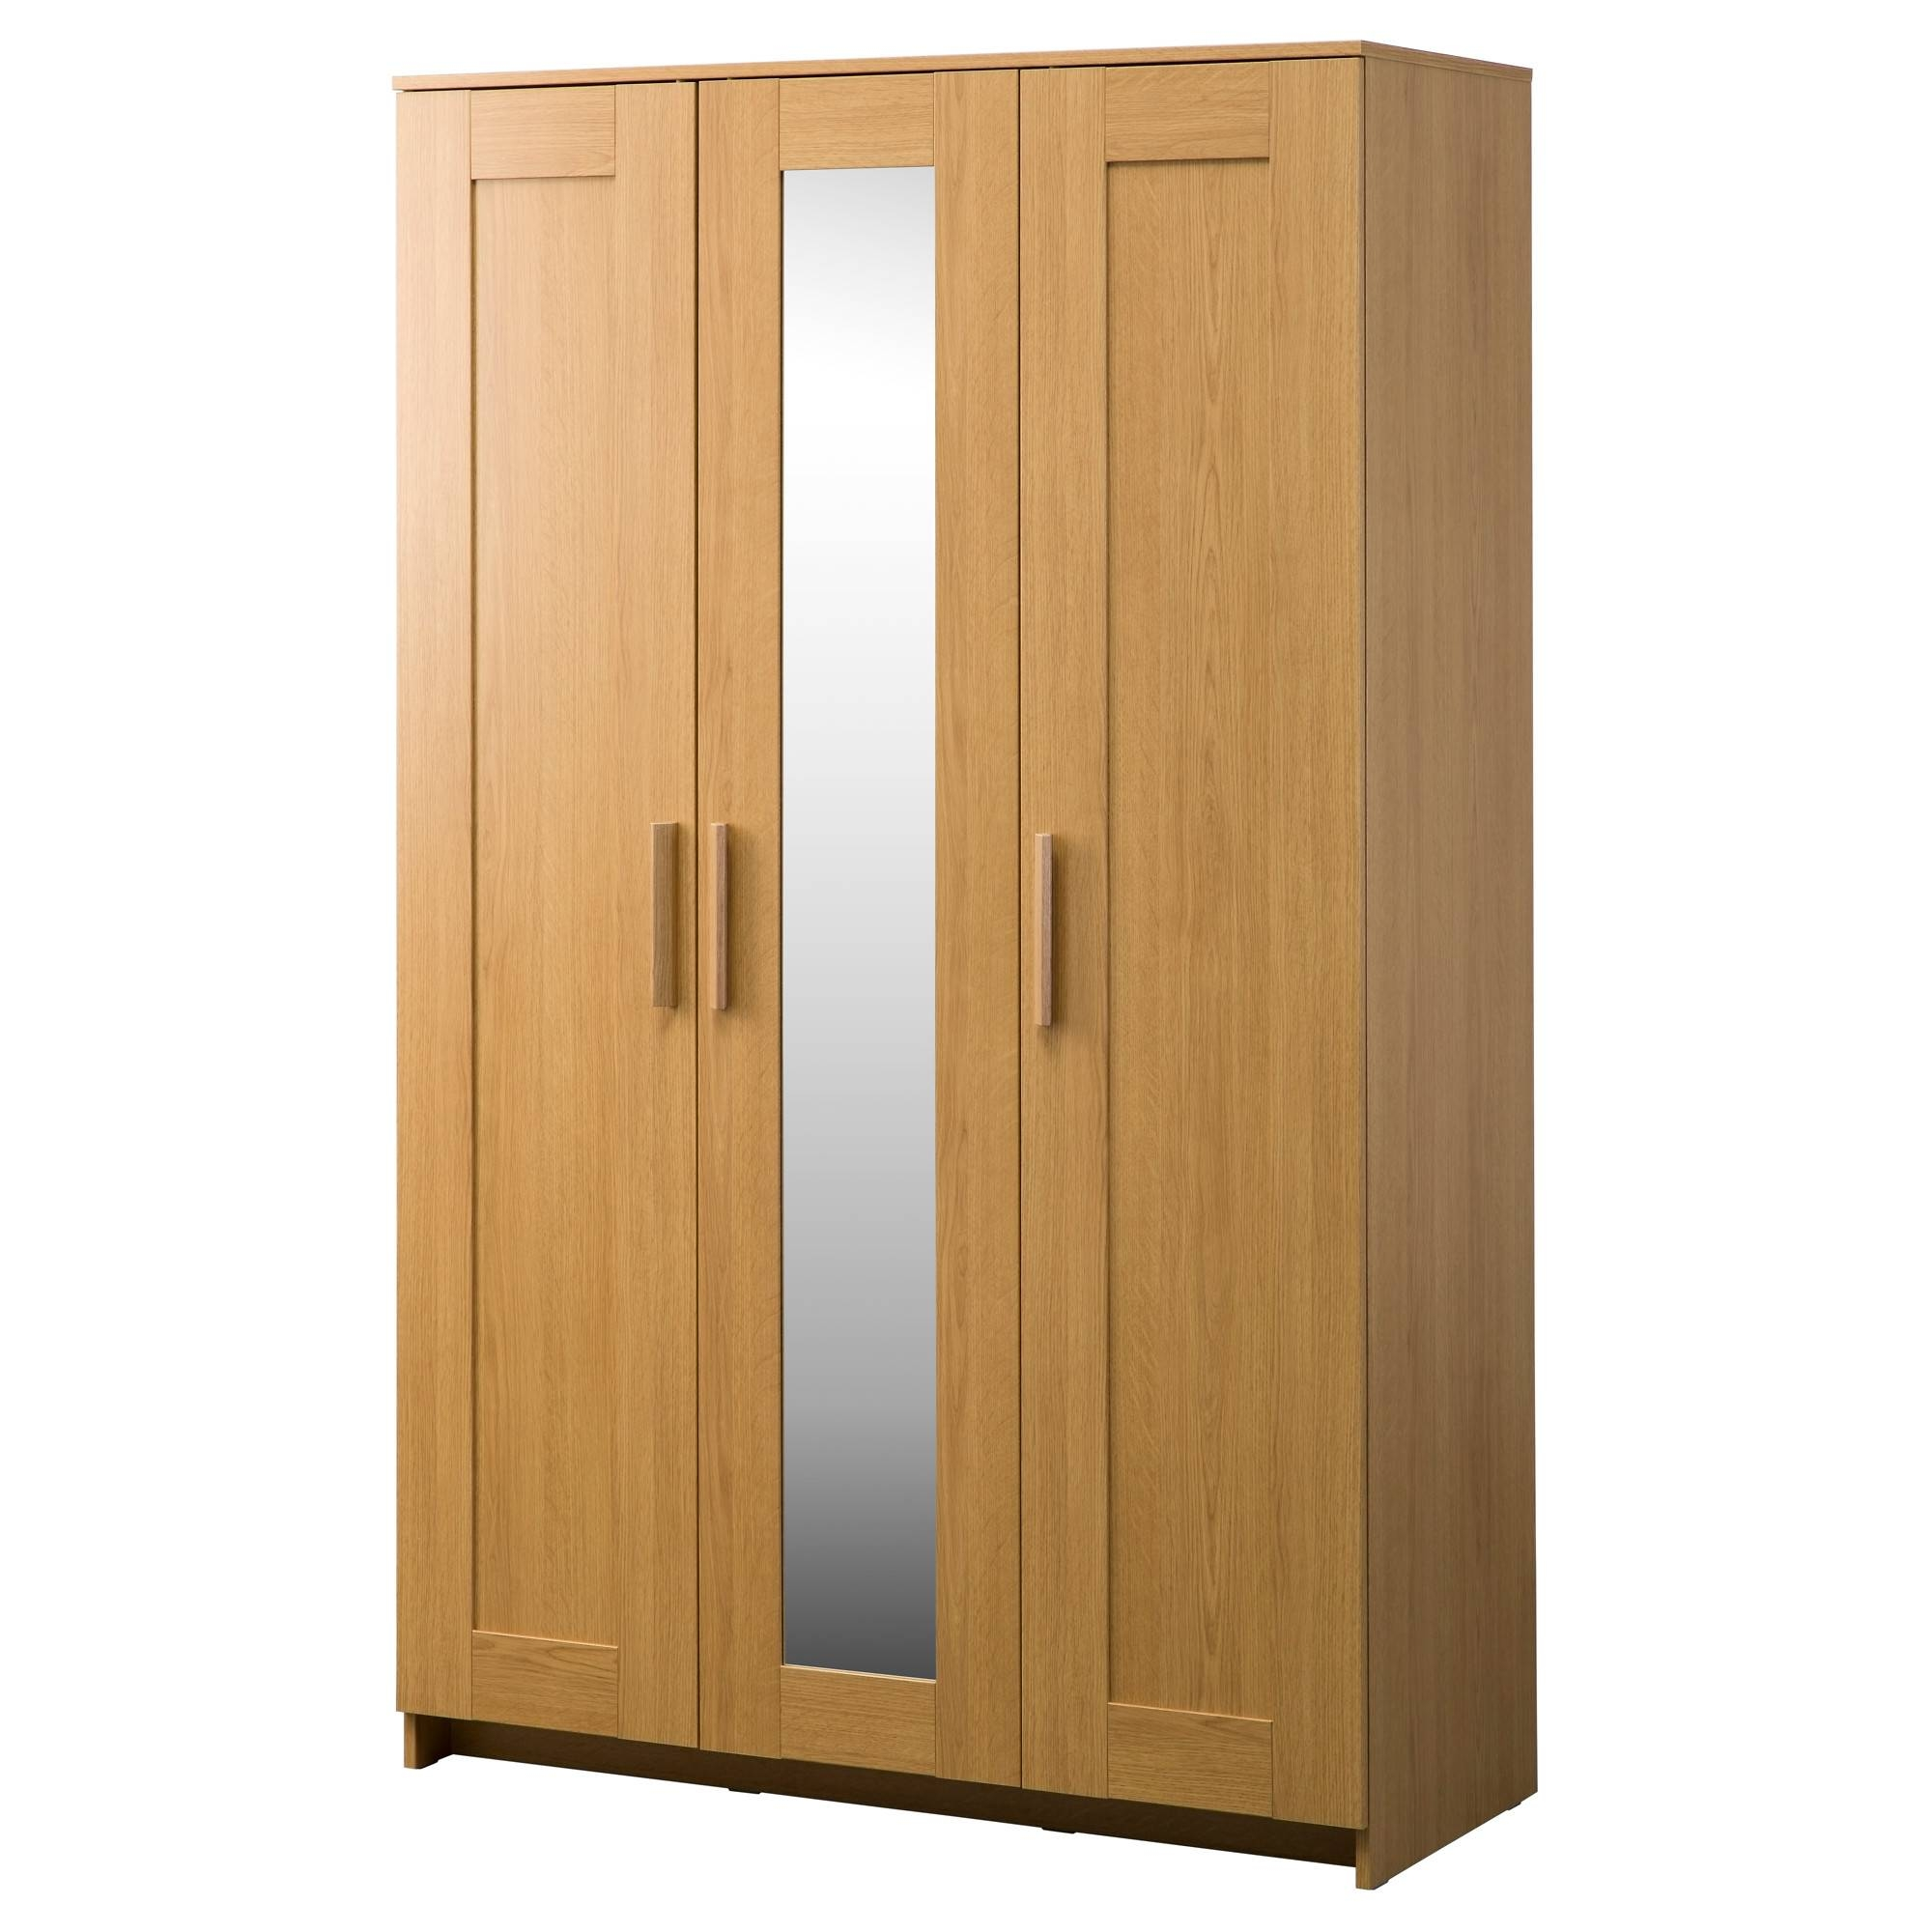 Wardrobes | Ikea for 3 Doors Wardrobes With Mirror (Image 15 of 15)